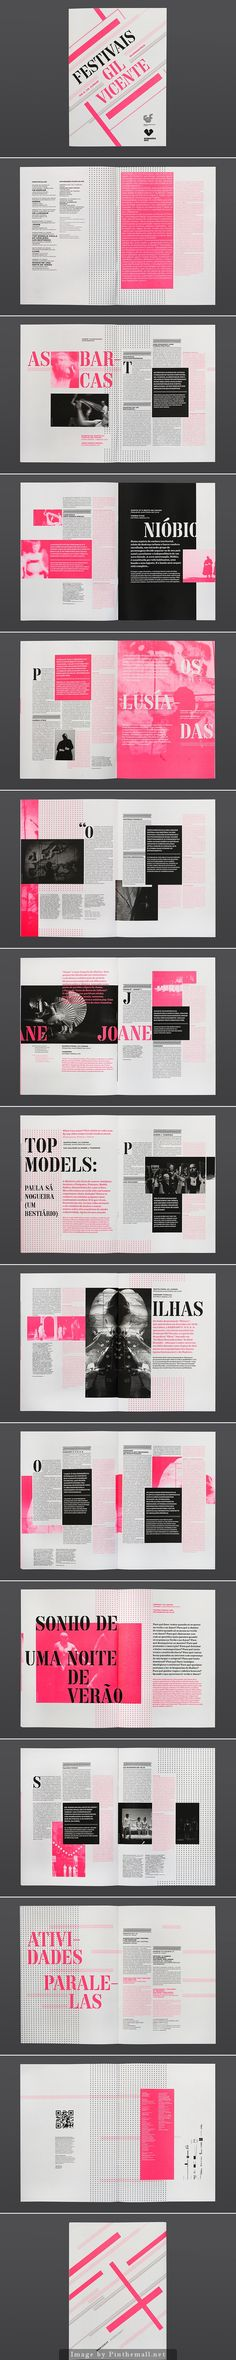 - Nice example of breaking the grid for the layout in this brochure / bichromie / noir / rose / pavé de texte / décalage Editorial Design Layouts, Magazine Layout Design, Graphic Design Layouts, Magazine Layouts, Graphisches Design, Buch Design, Grid Design, Layout Inspiration, Graphic Design Inspiration